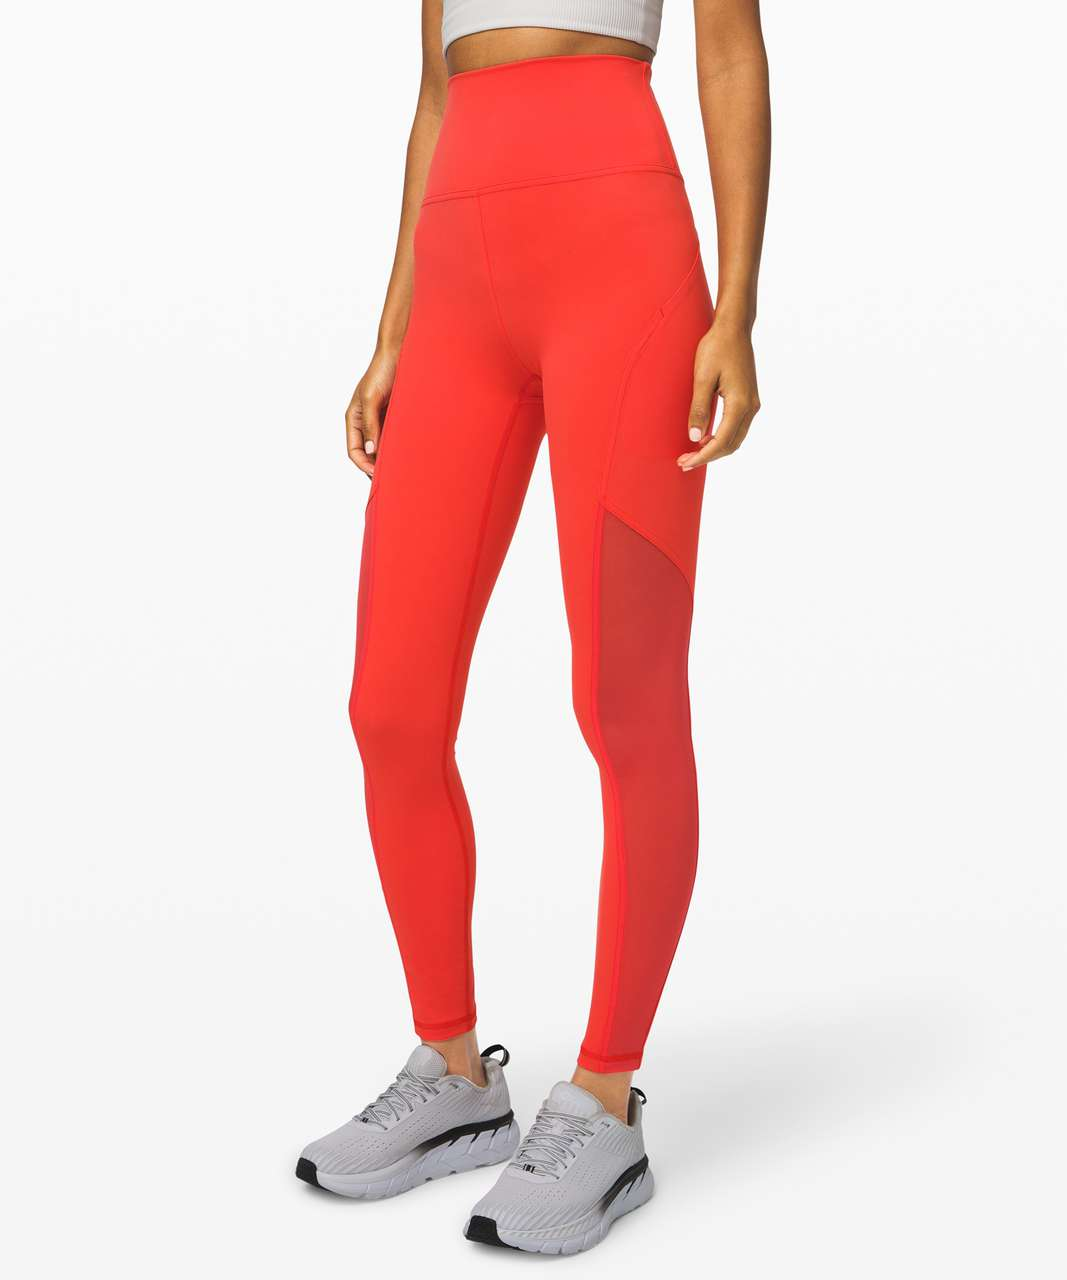 "Lululemon Mastered Motion High-Rise Tight 28"" - Thermal Red"